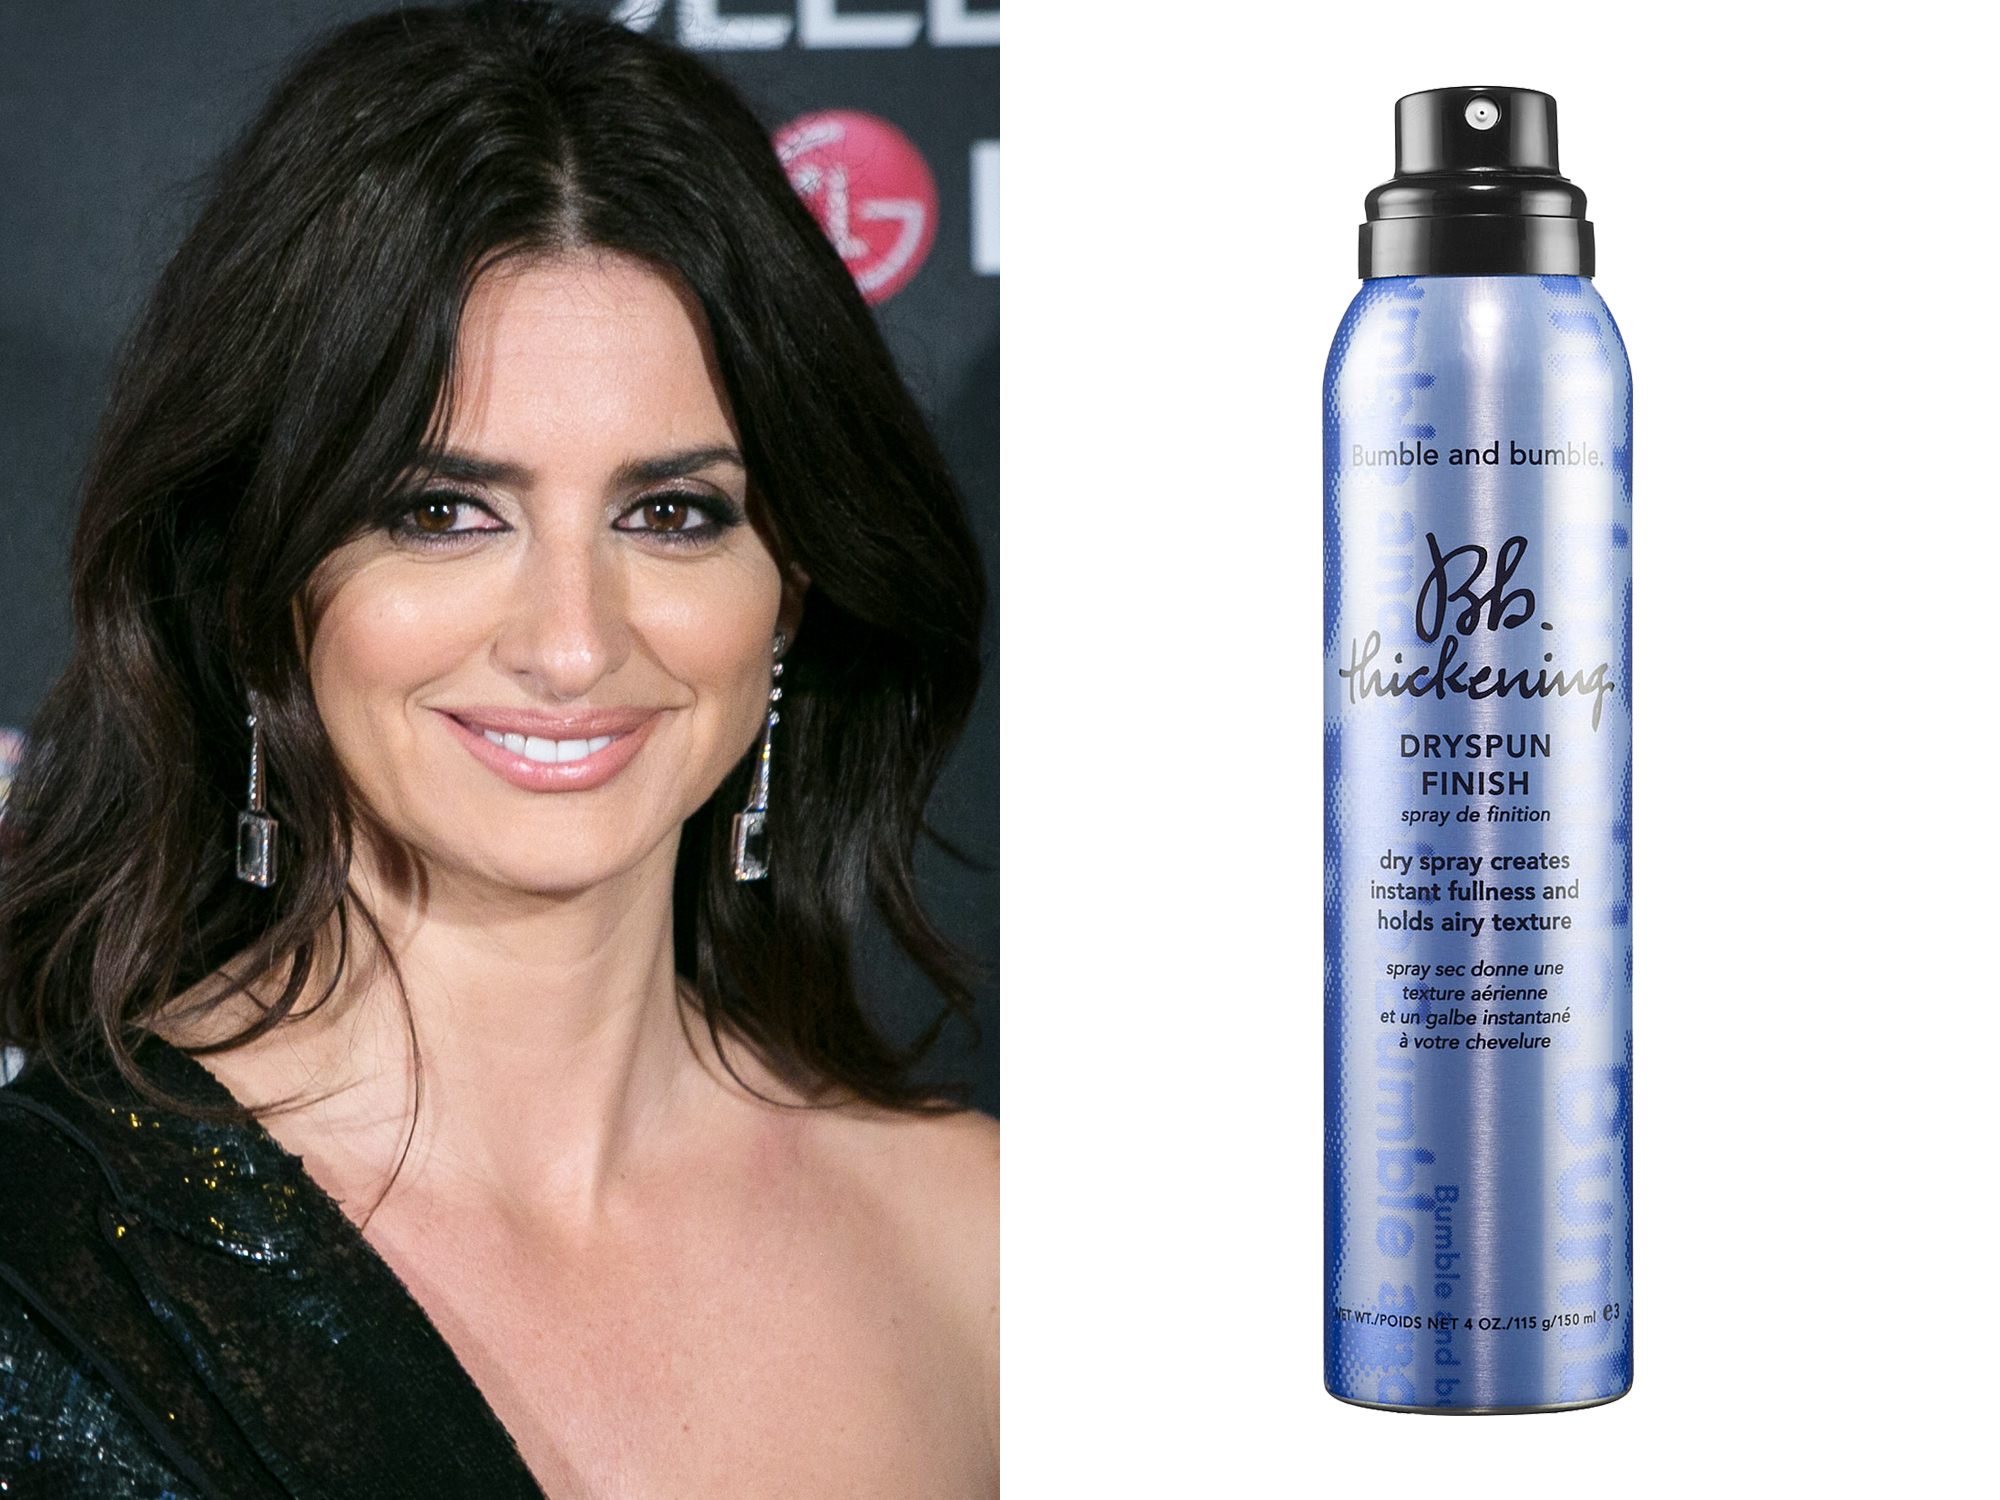 Penelope Cruz: Bumble and bumble Dryspun Thickening Spray